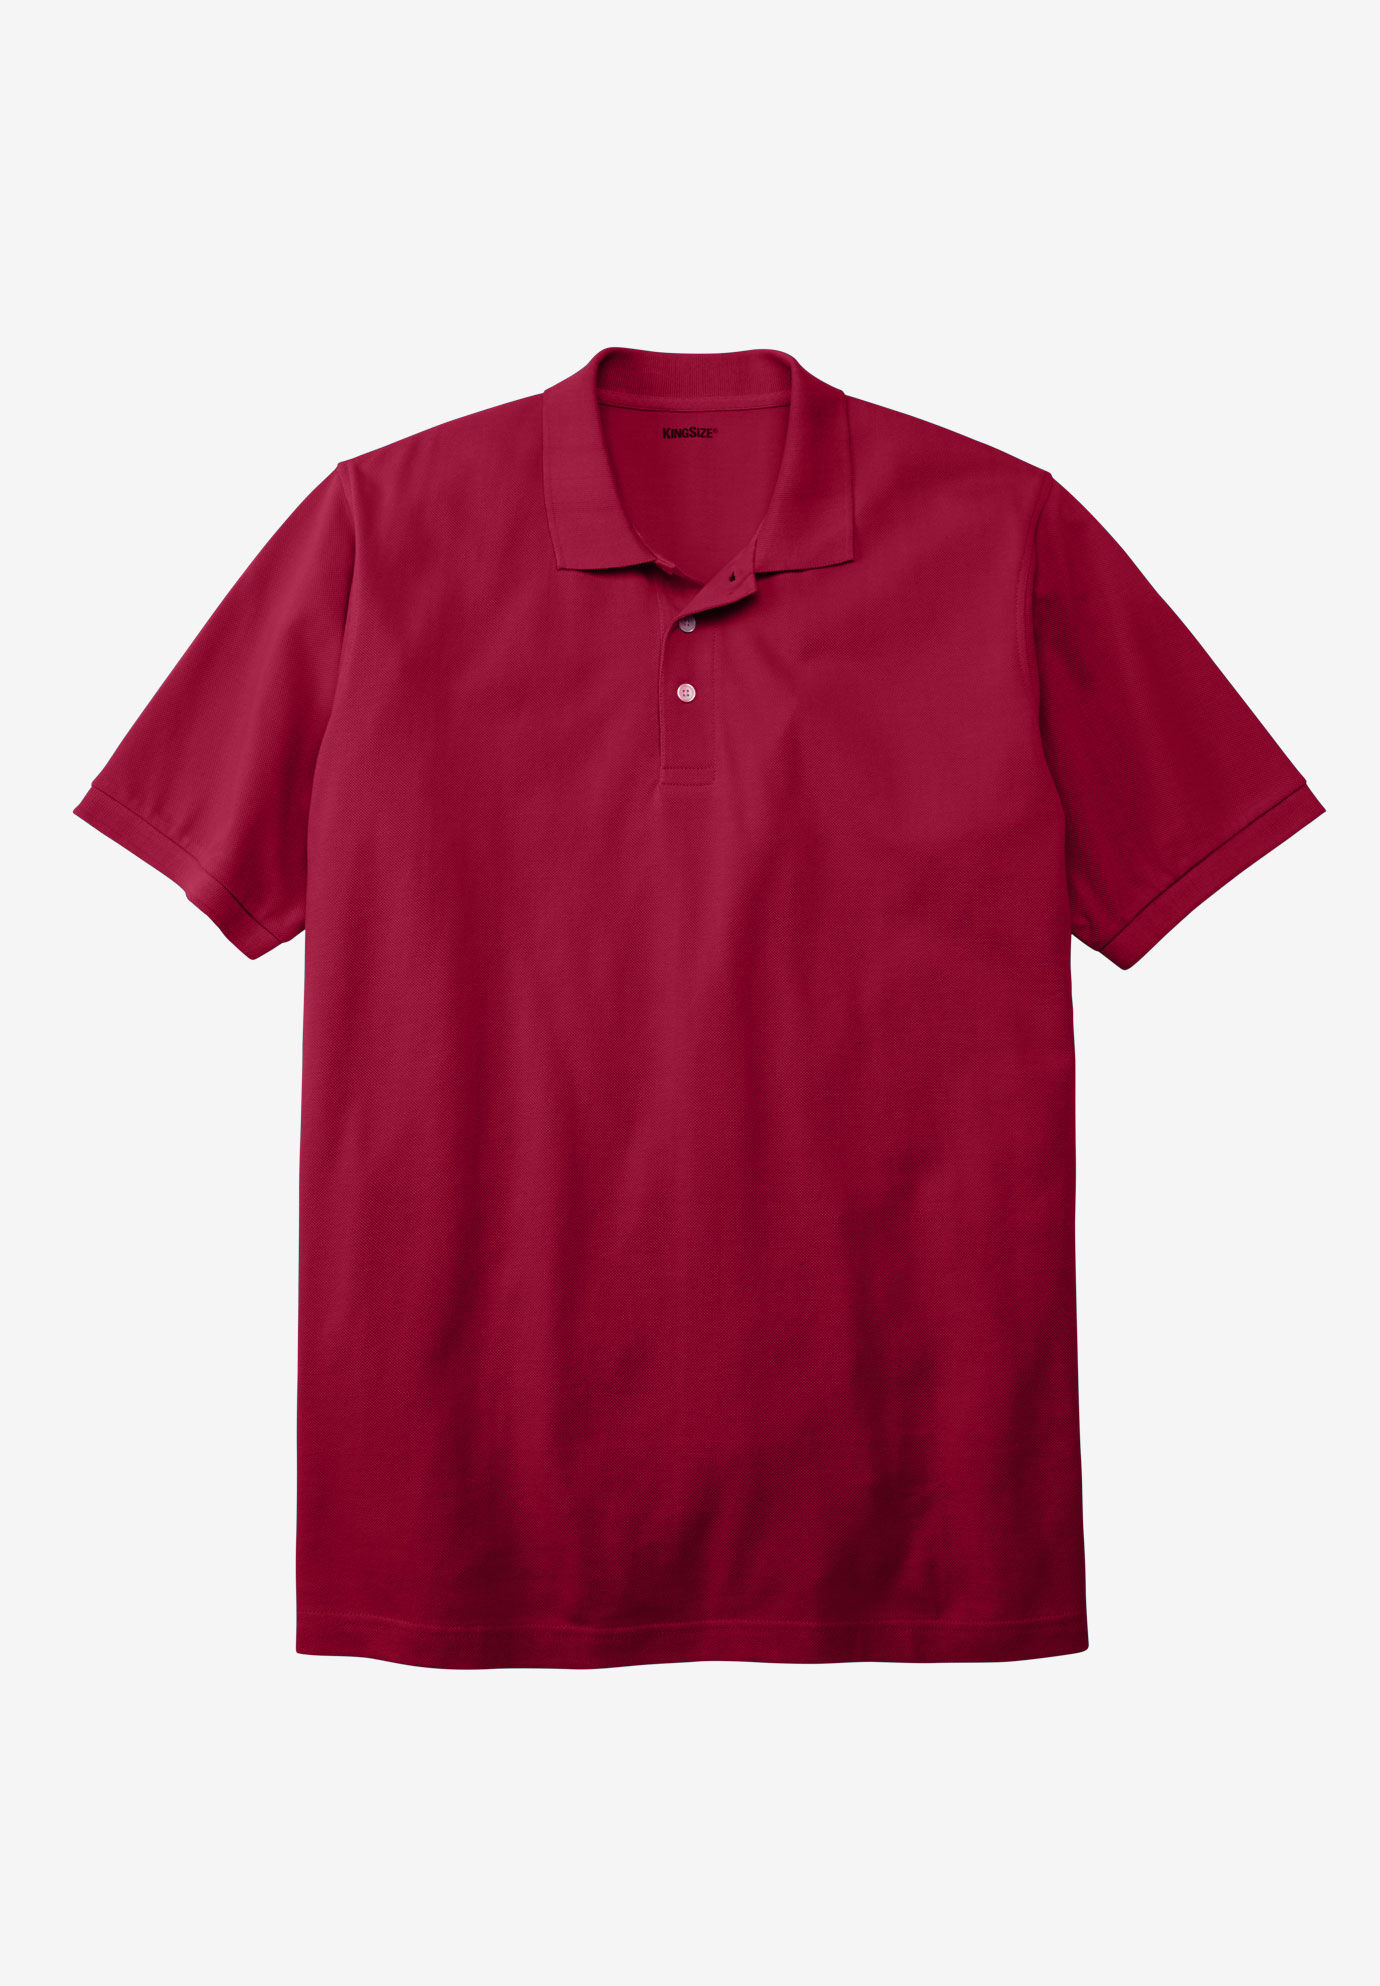 Big & Tall Polo Shirts for Men | King Size